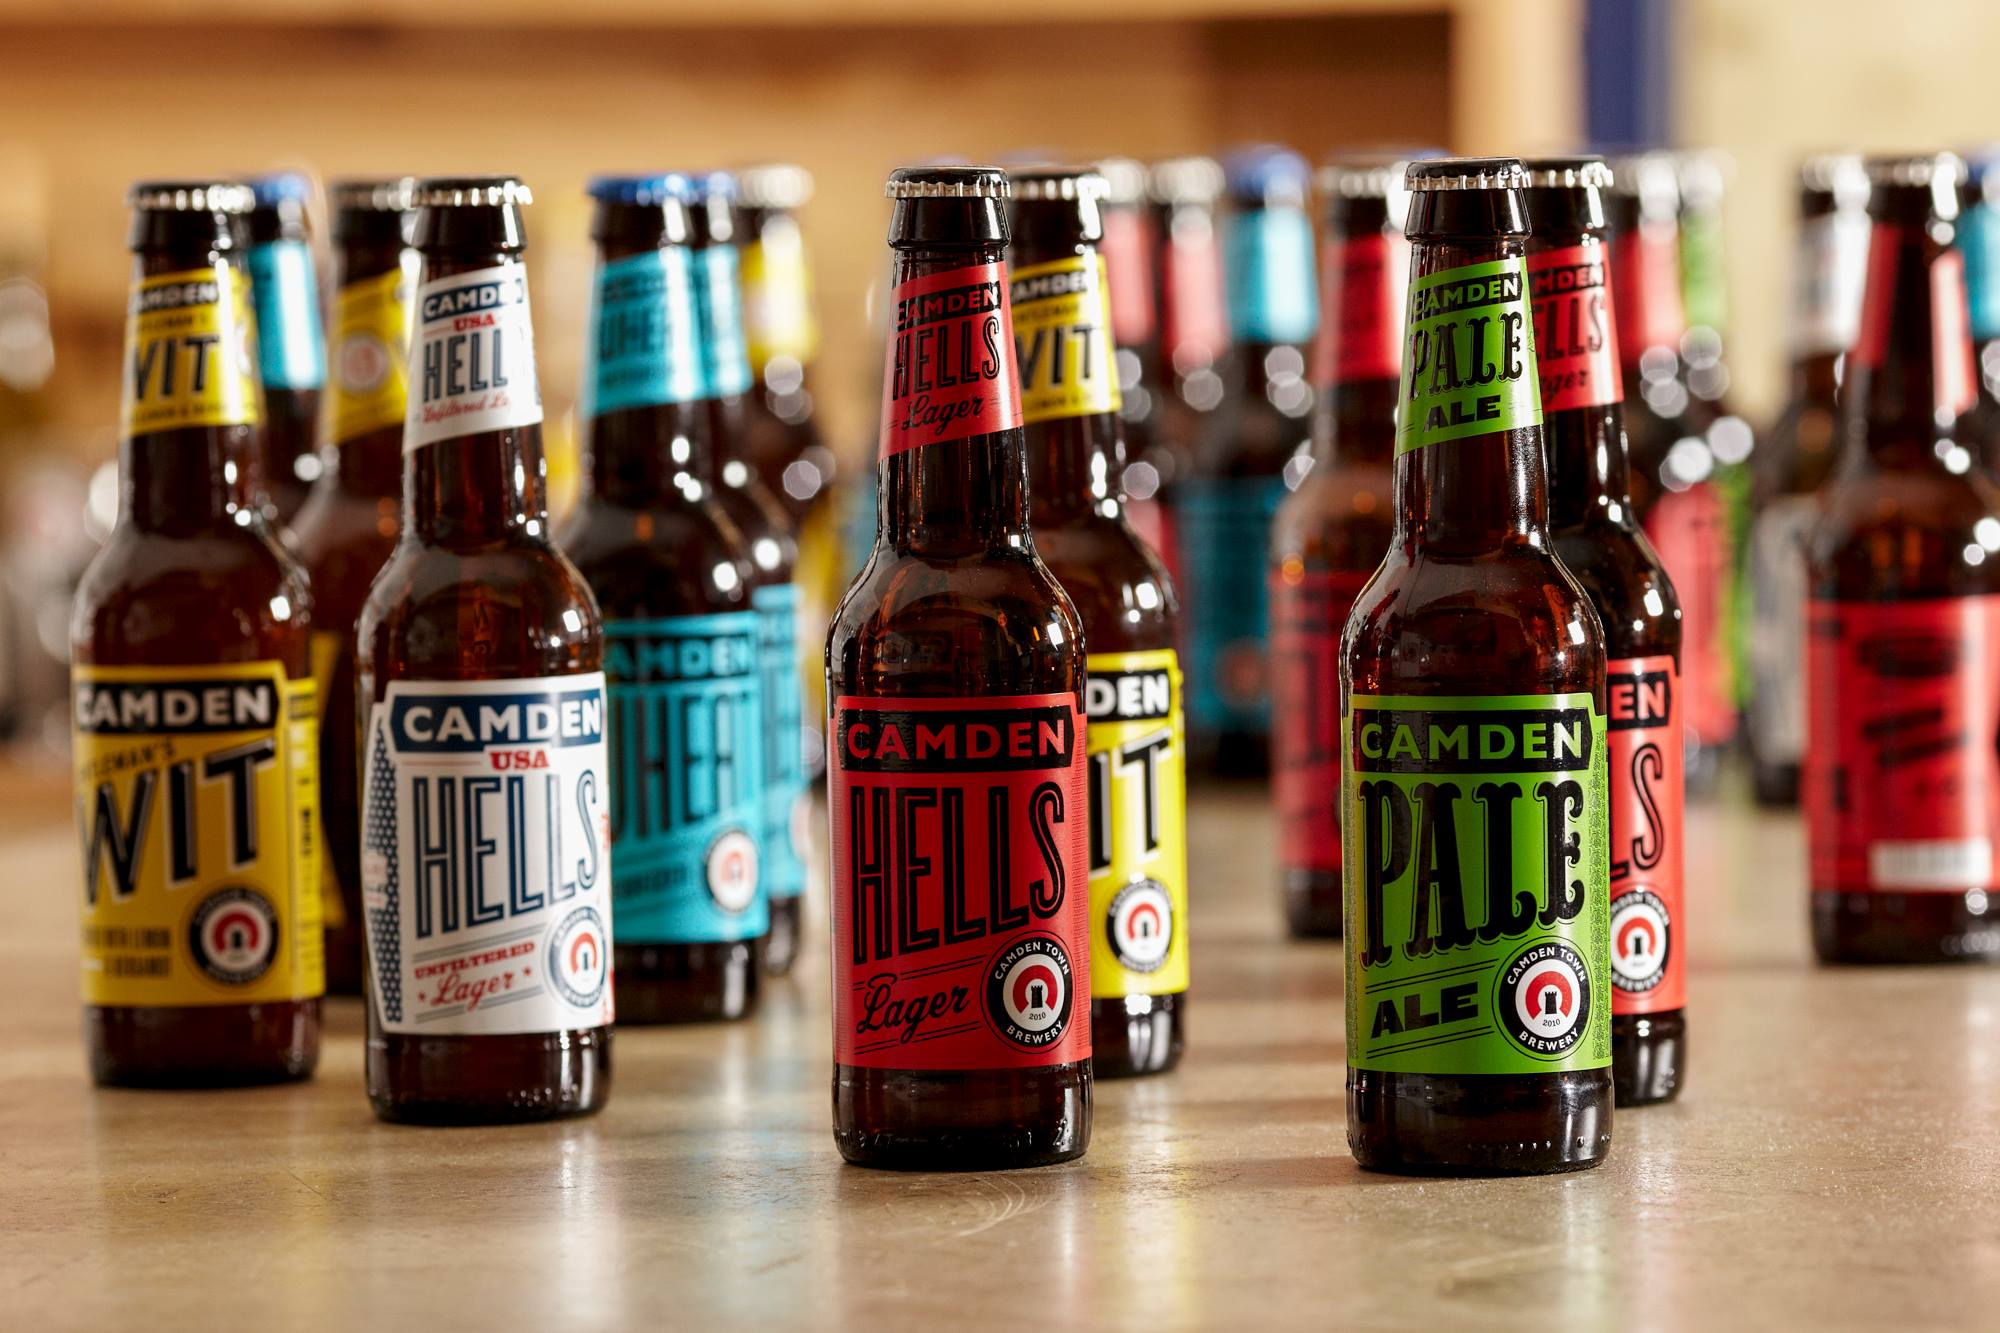 b987efa0551 Camden Town Bought Out by AB InBev - AltFi News